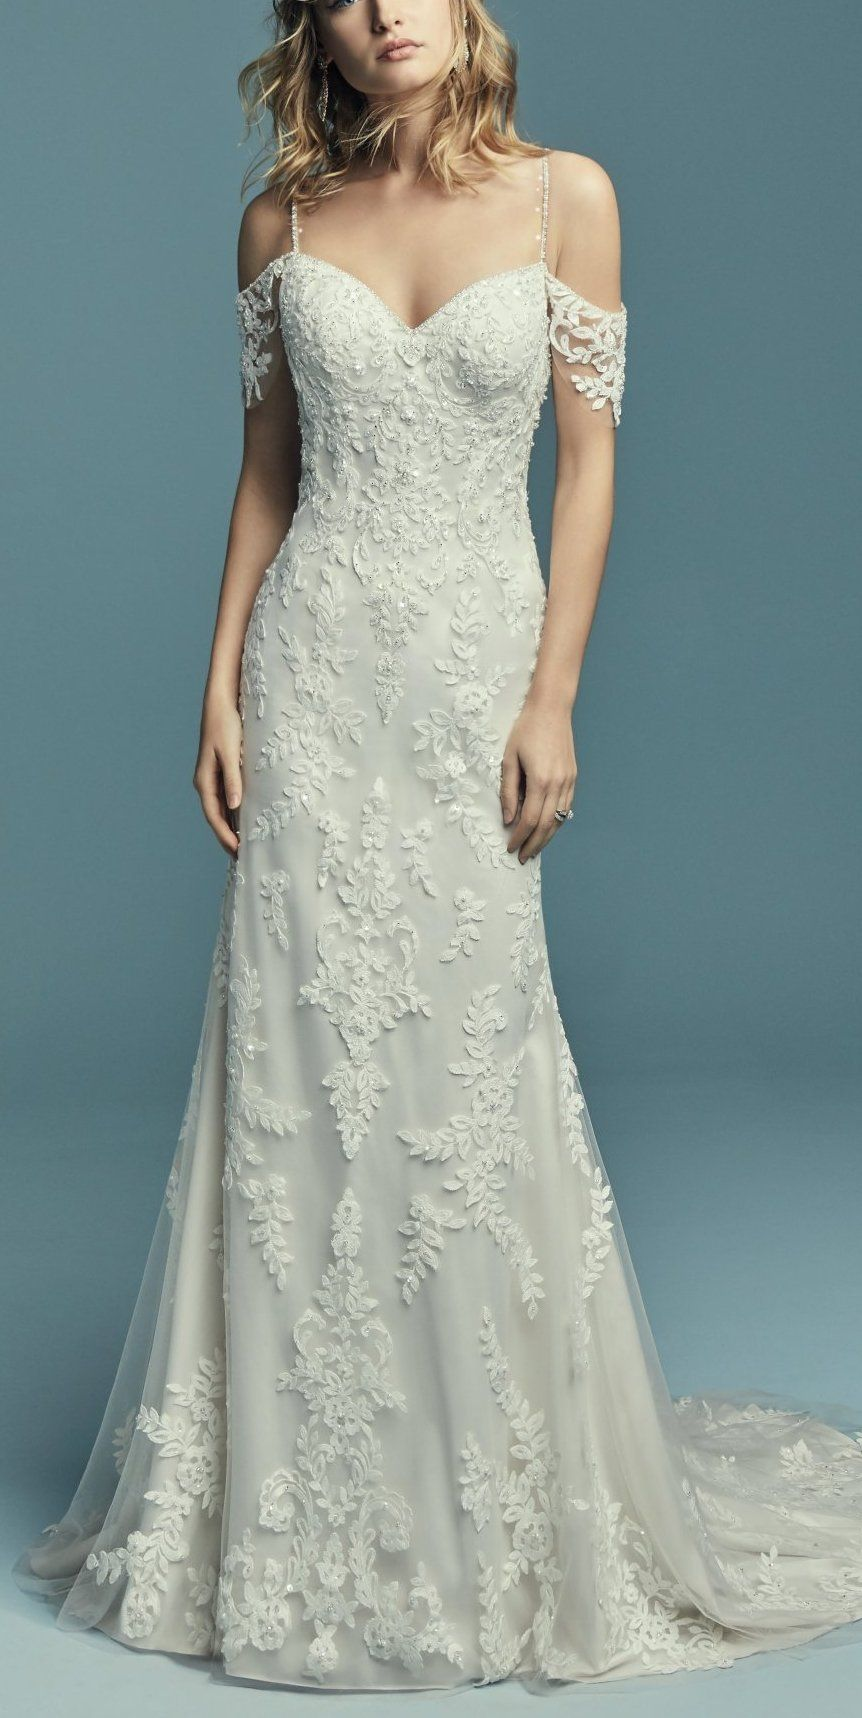 a122d89c39f ANGELICA by Maggie Sottero Wedding Dresses in 2019